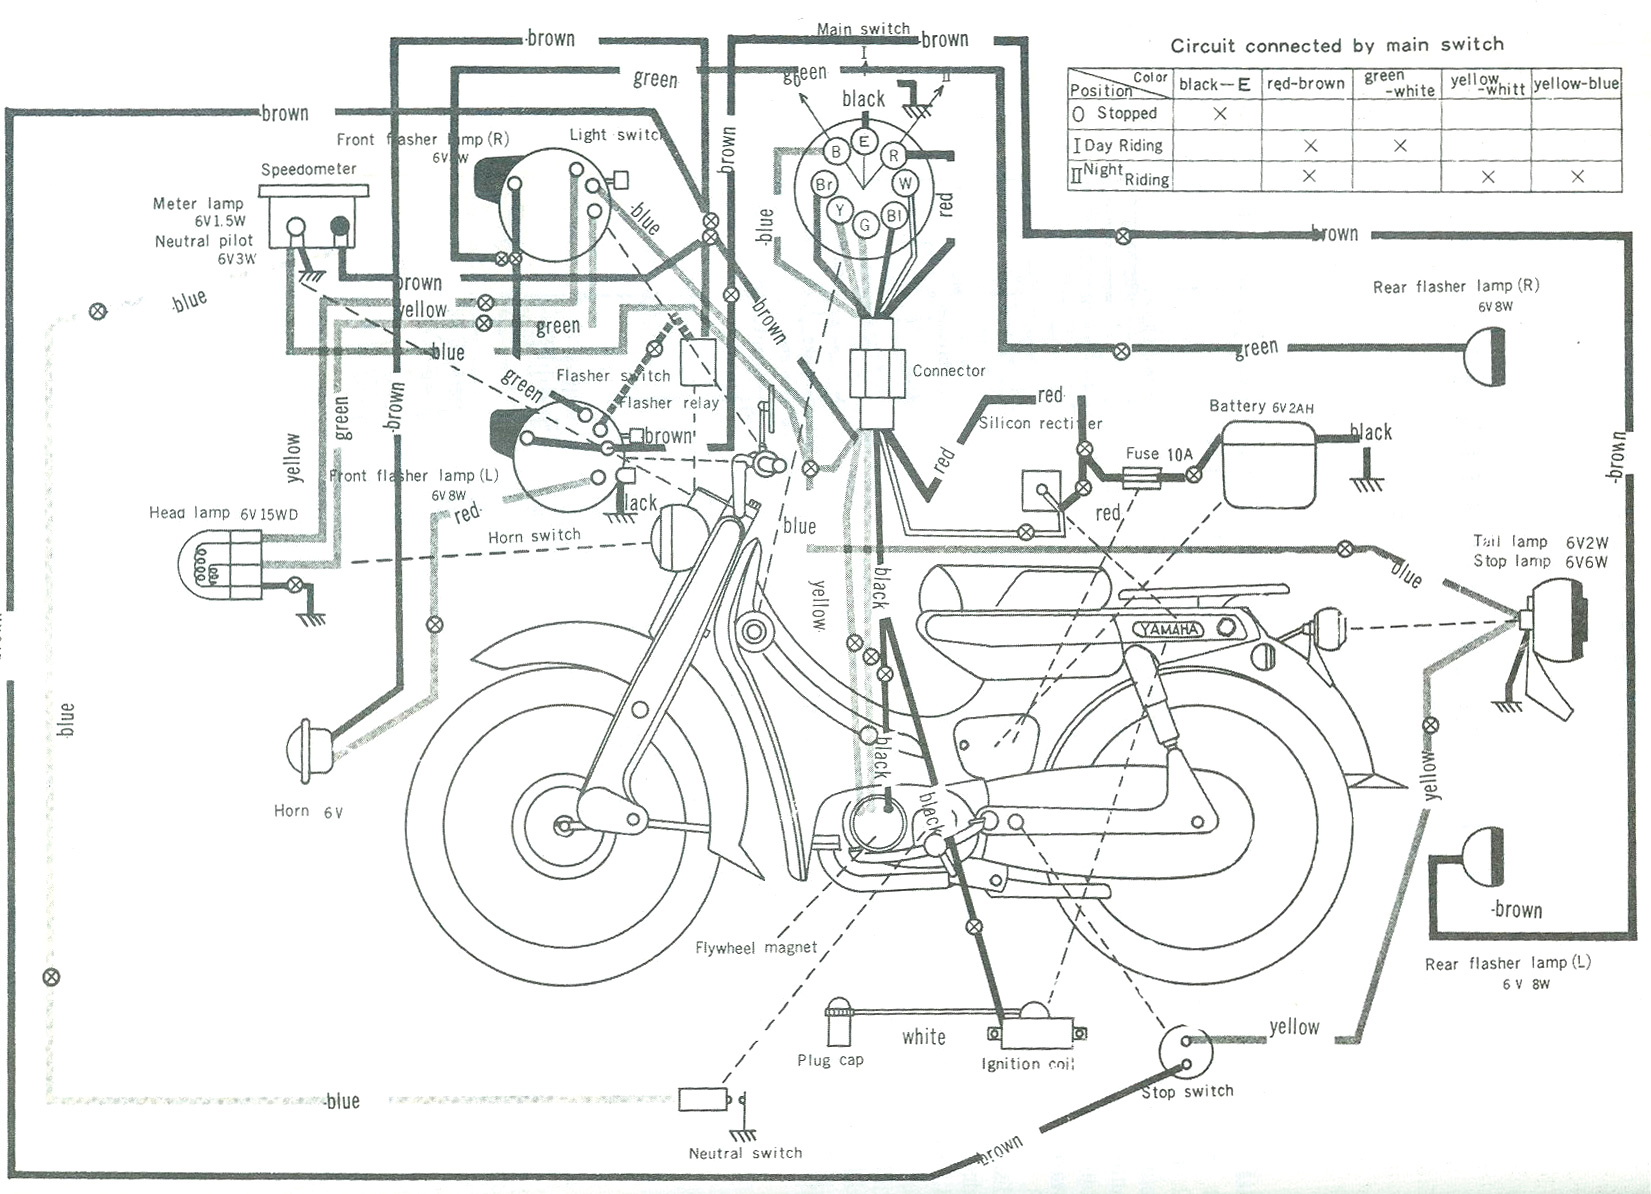 u5e_wiring u5e] motorcycle wiring schematics diagram yamaha schematic diagram at n-0.co